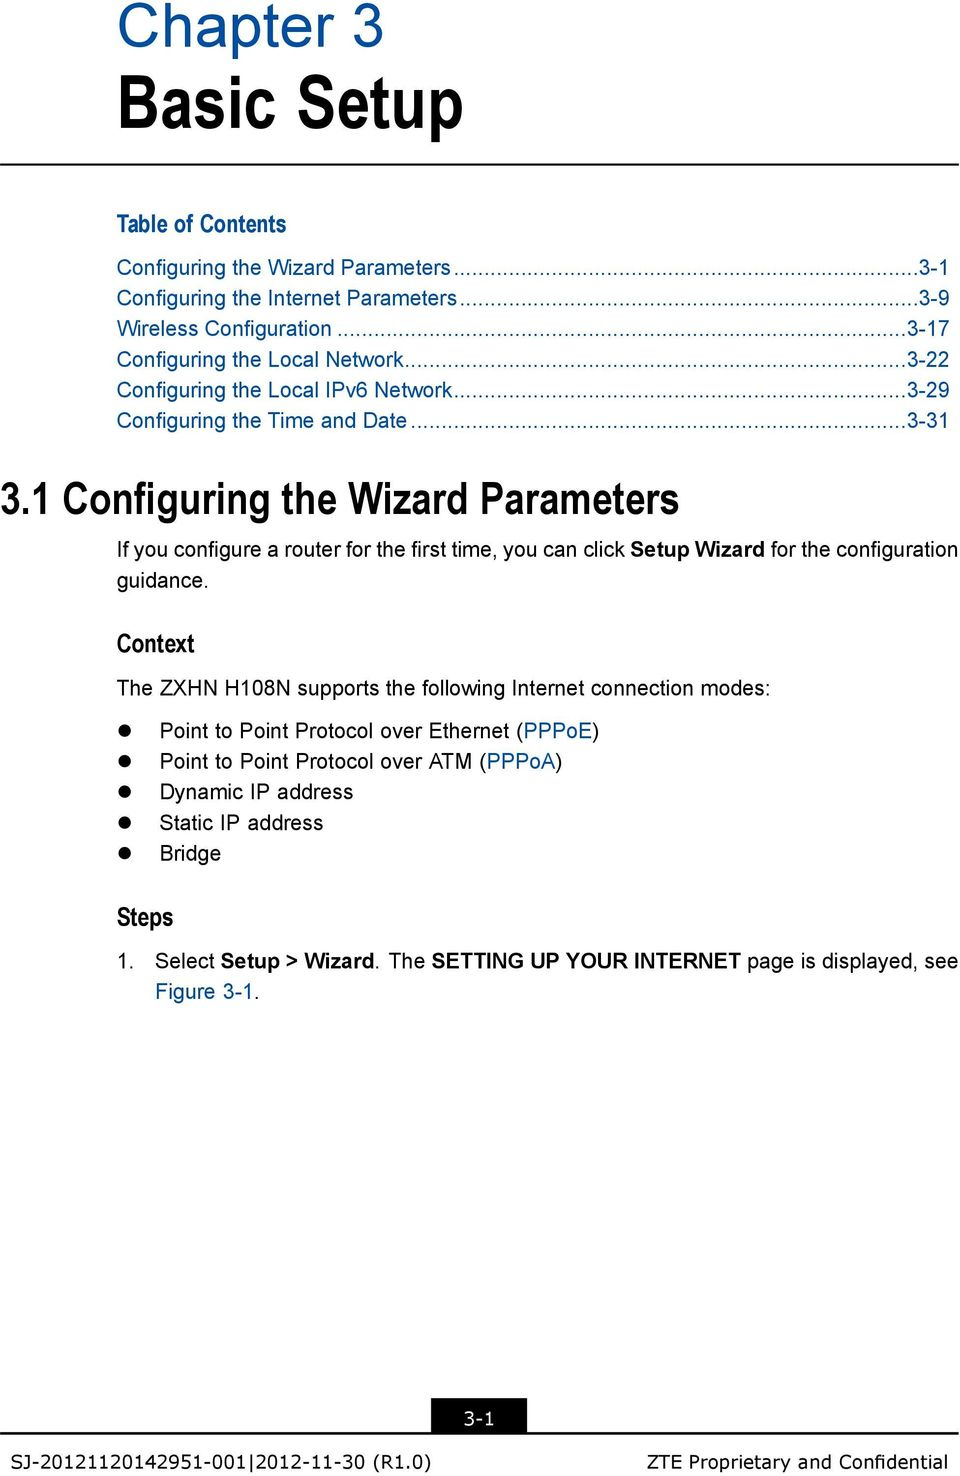 1 Configuring the Wizard s If you configure a router for the first time, you can click Setup Wizard for the configuration guidance.